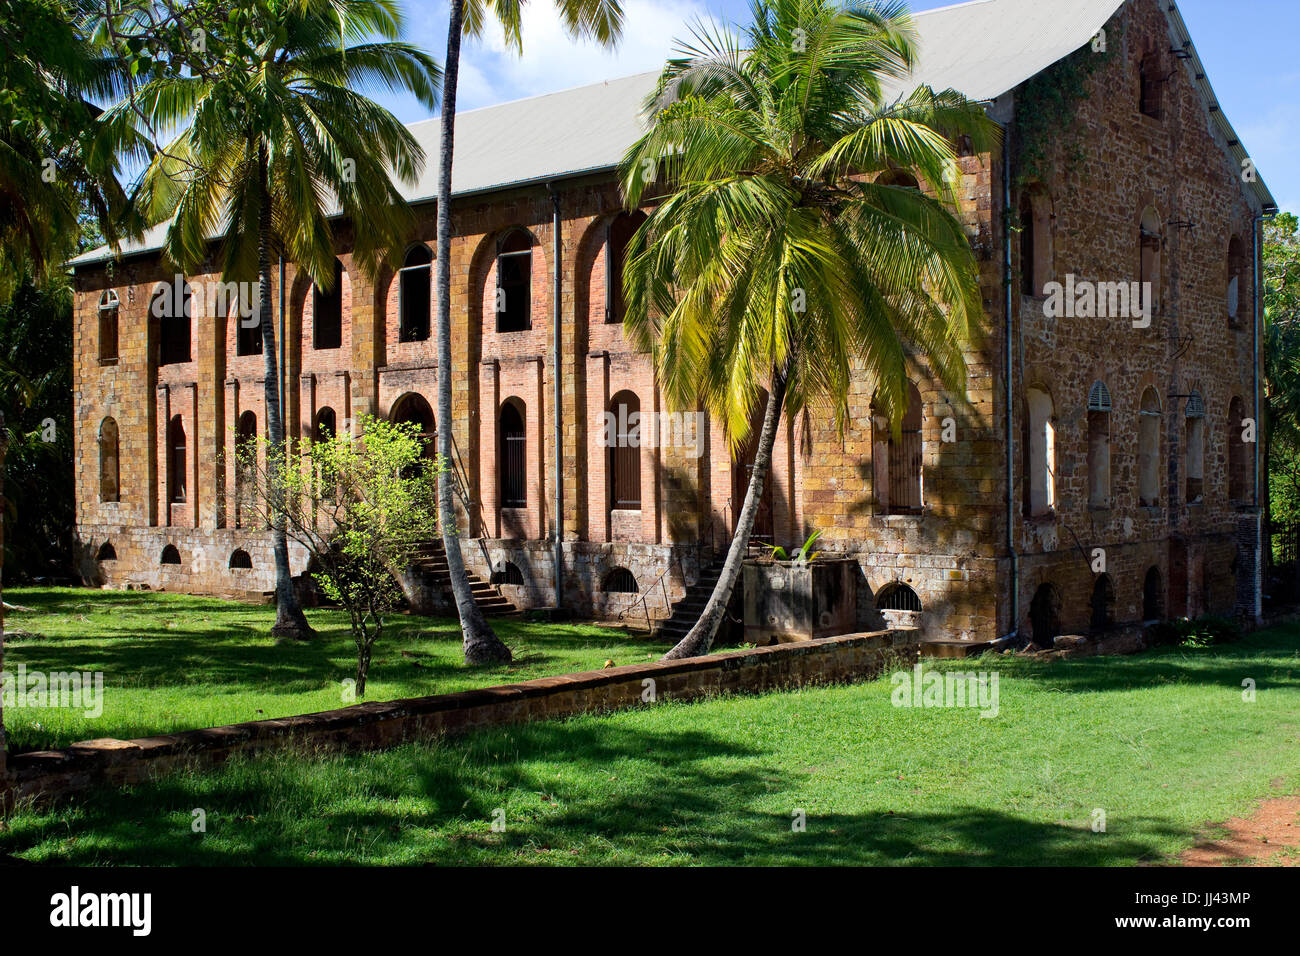 A former hospital on Salvation's islands. Inmates of former penal colony were treated there. - Stock Image